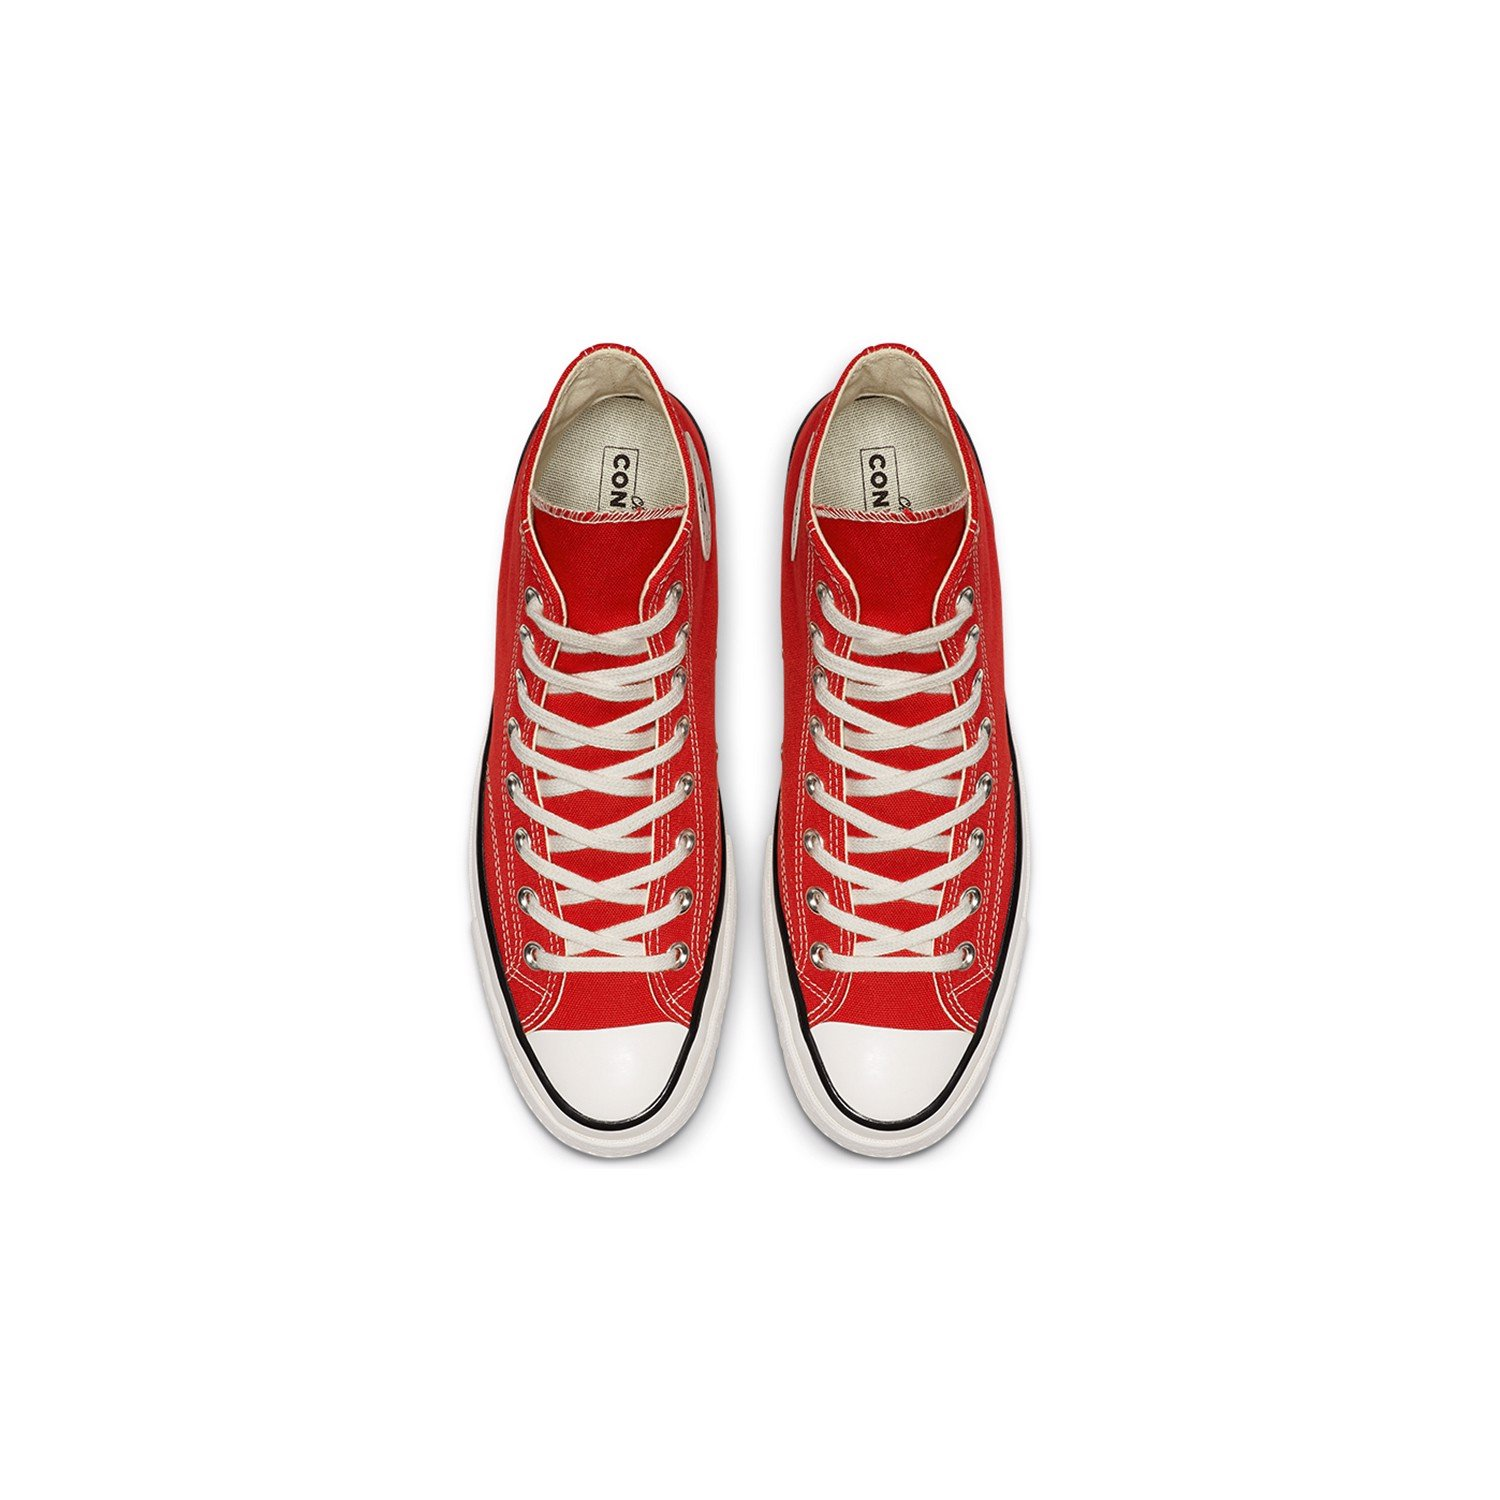 Converse Chuck 70 Vintage Canvas High 'Red'